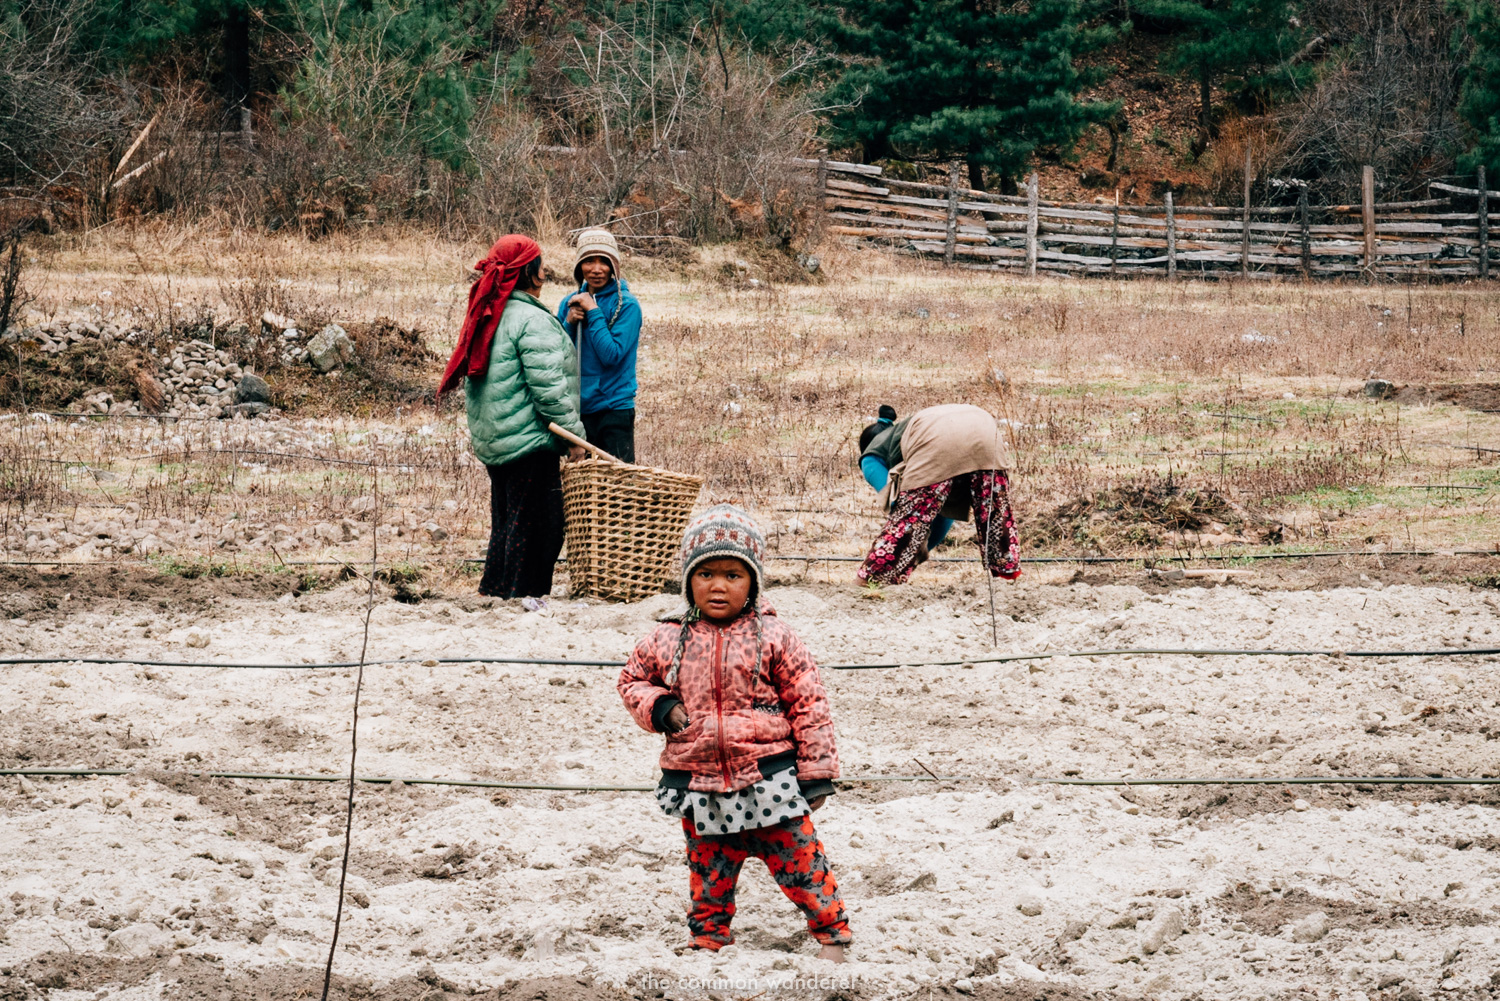 Locals farming on the Annapurna Circuit trek, Nepal